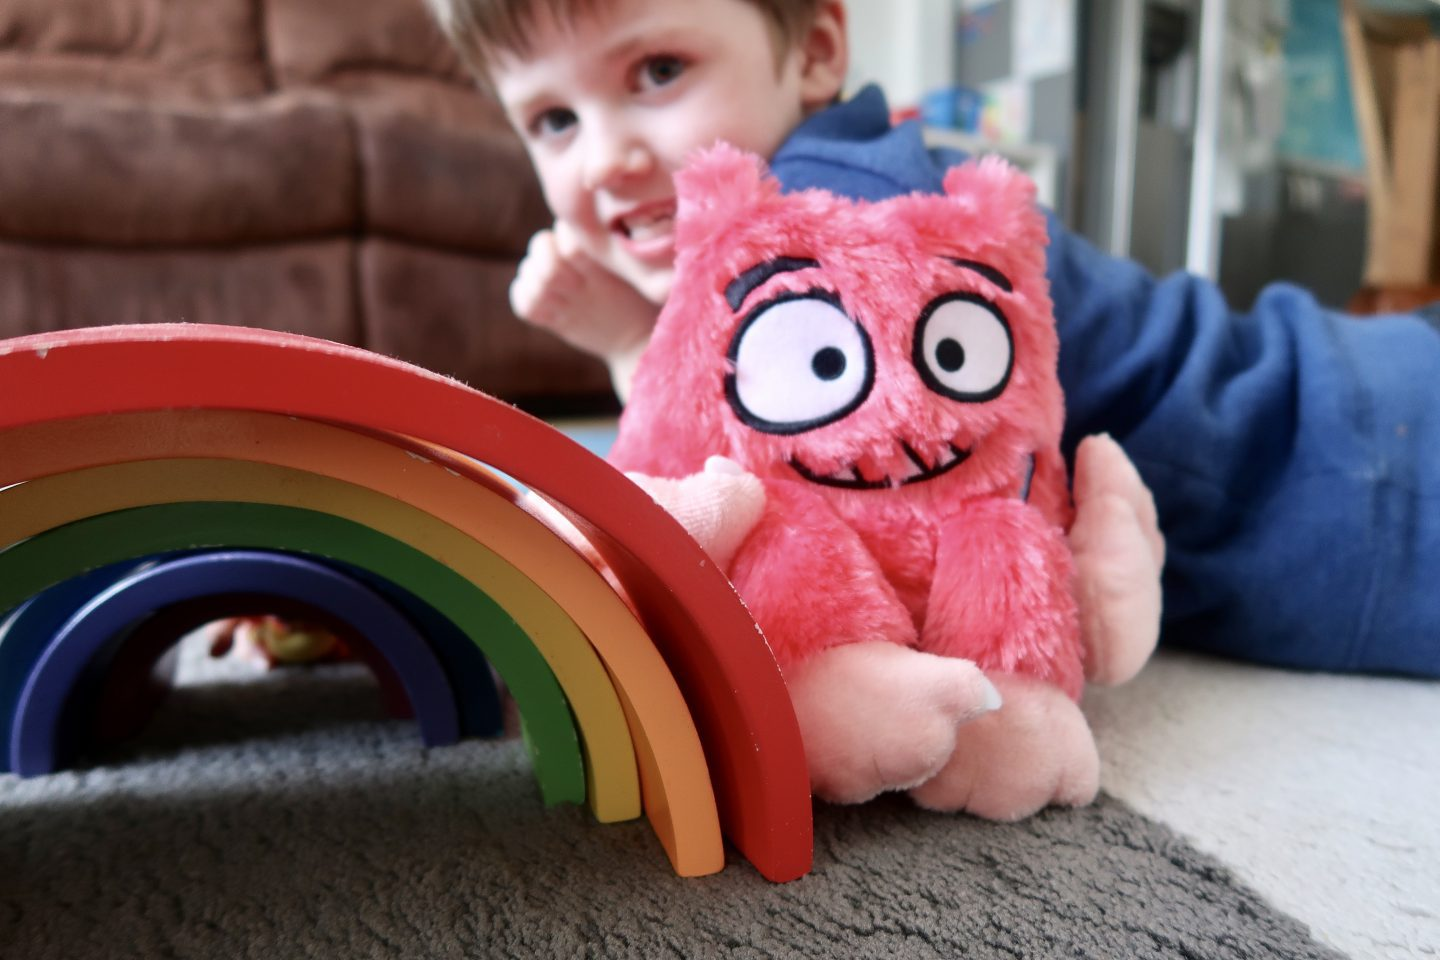 A wooden rainbow next to a fluffy monster toy. There is a boy smiling in the background slightly out of focus